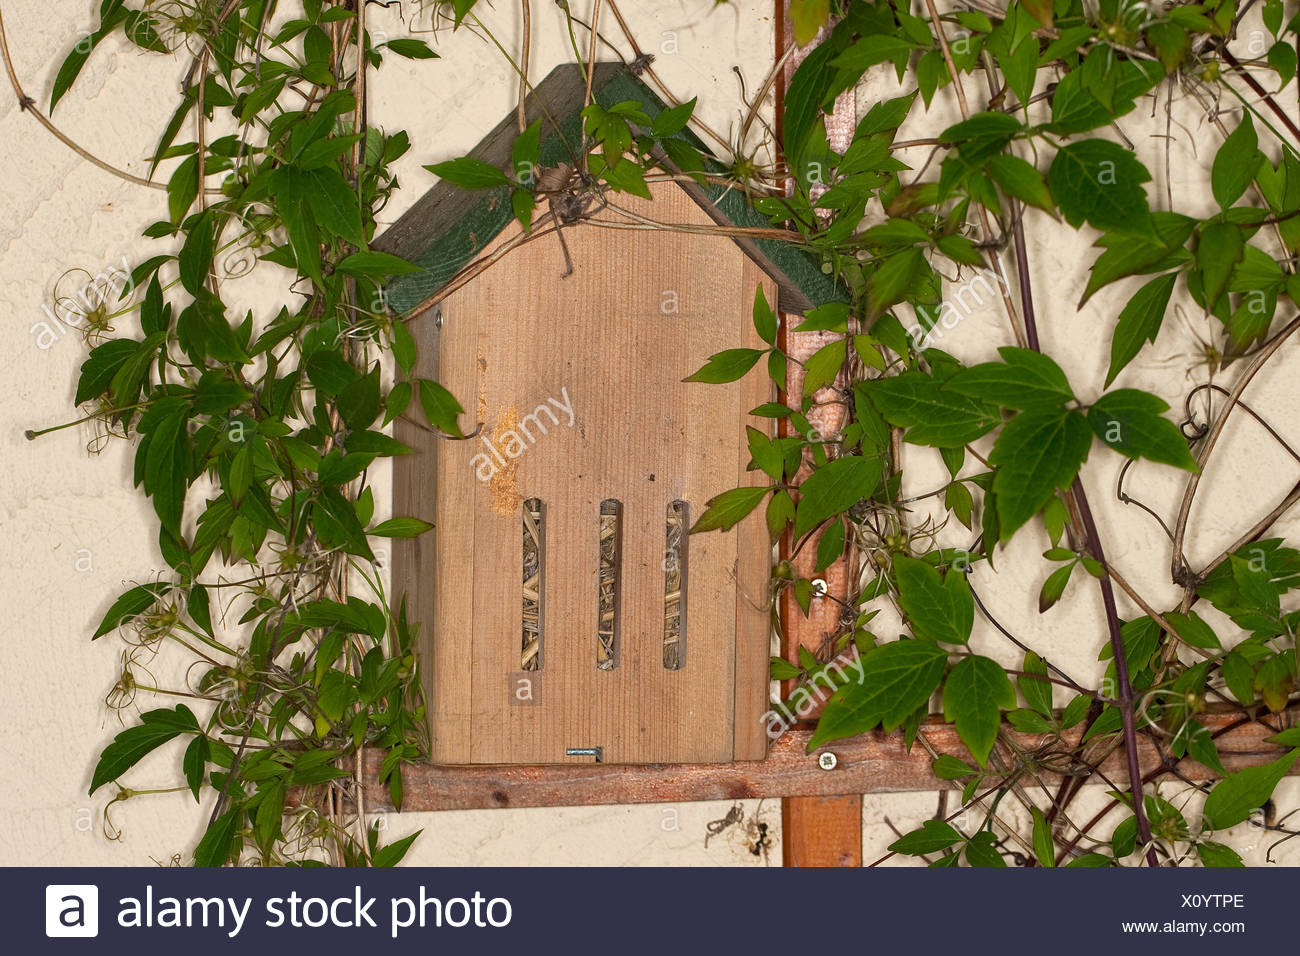 butterfly box in the garden serving as hibernation aid, Germany - Stock Image